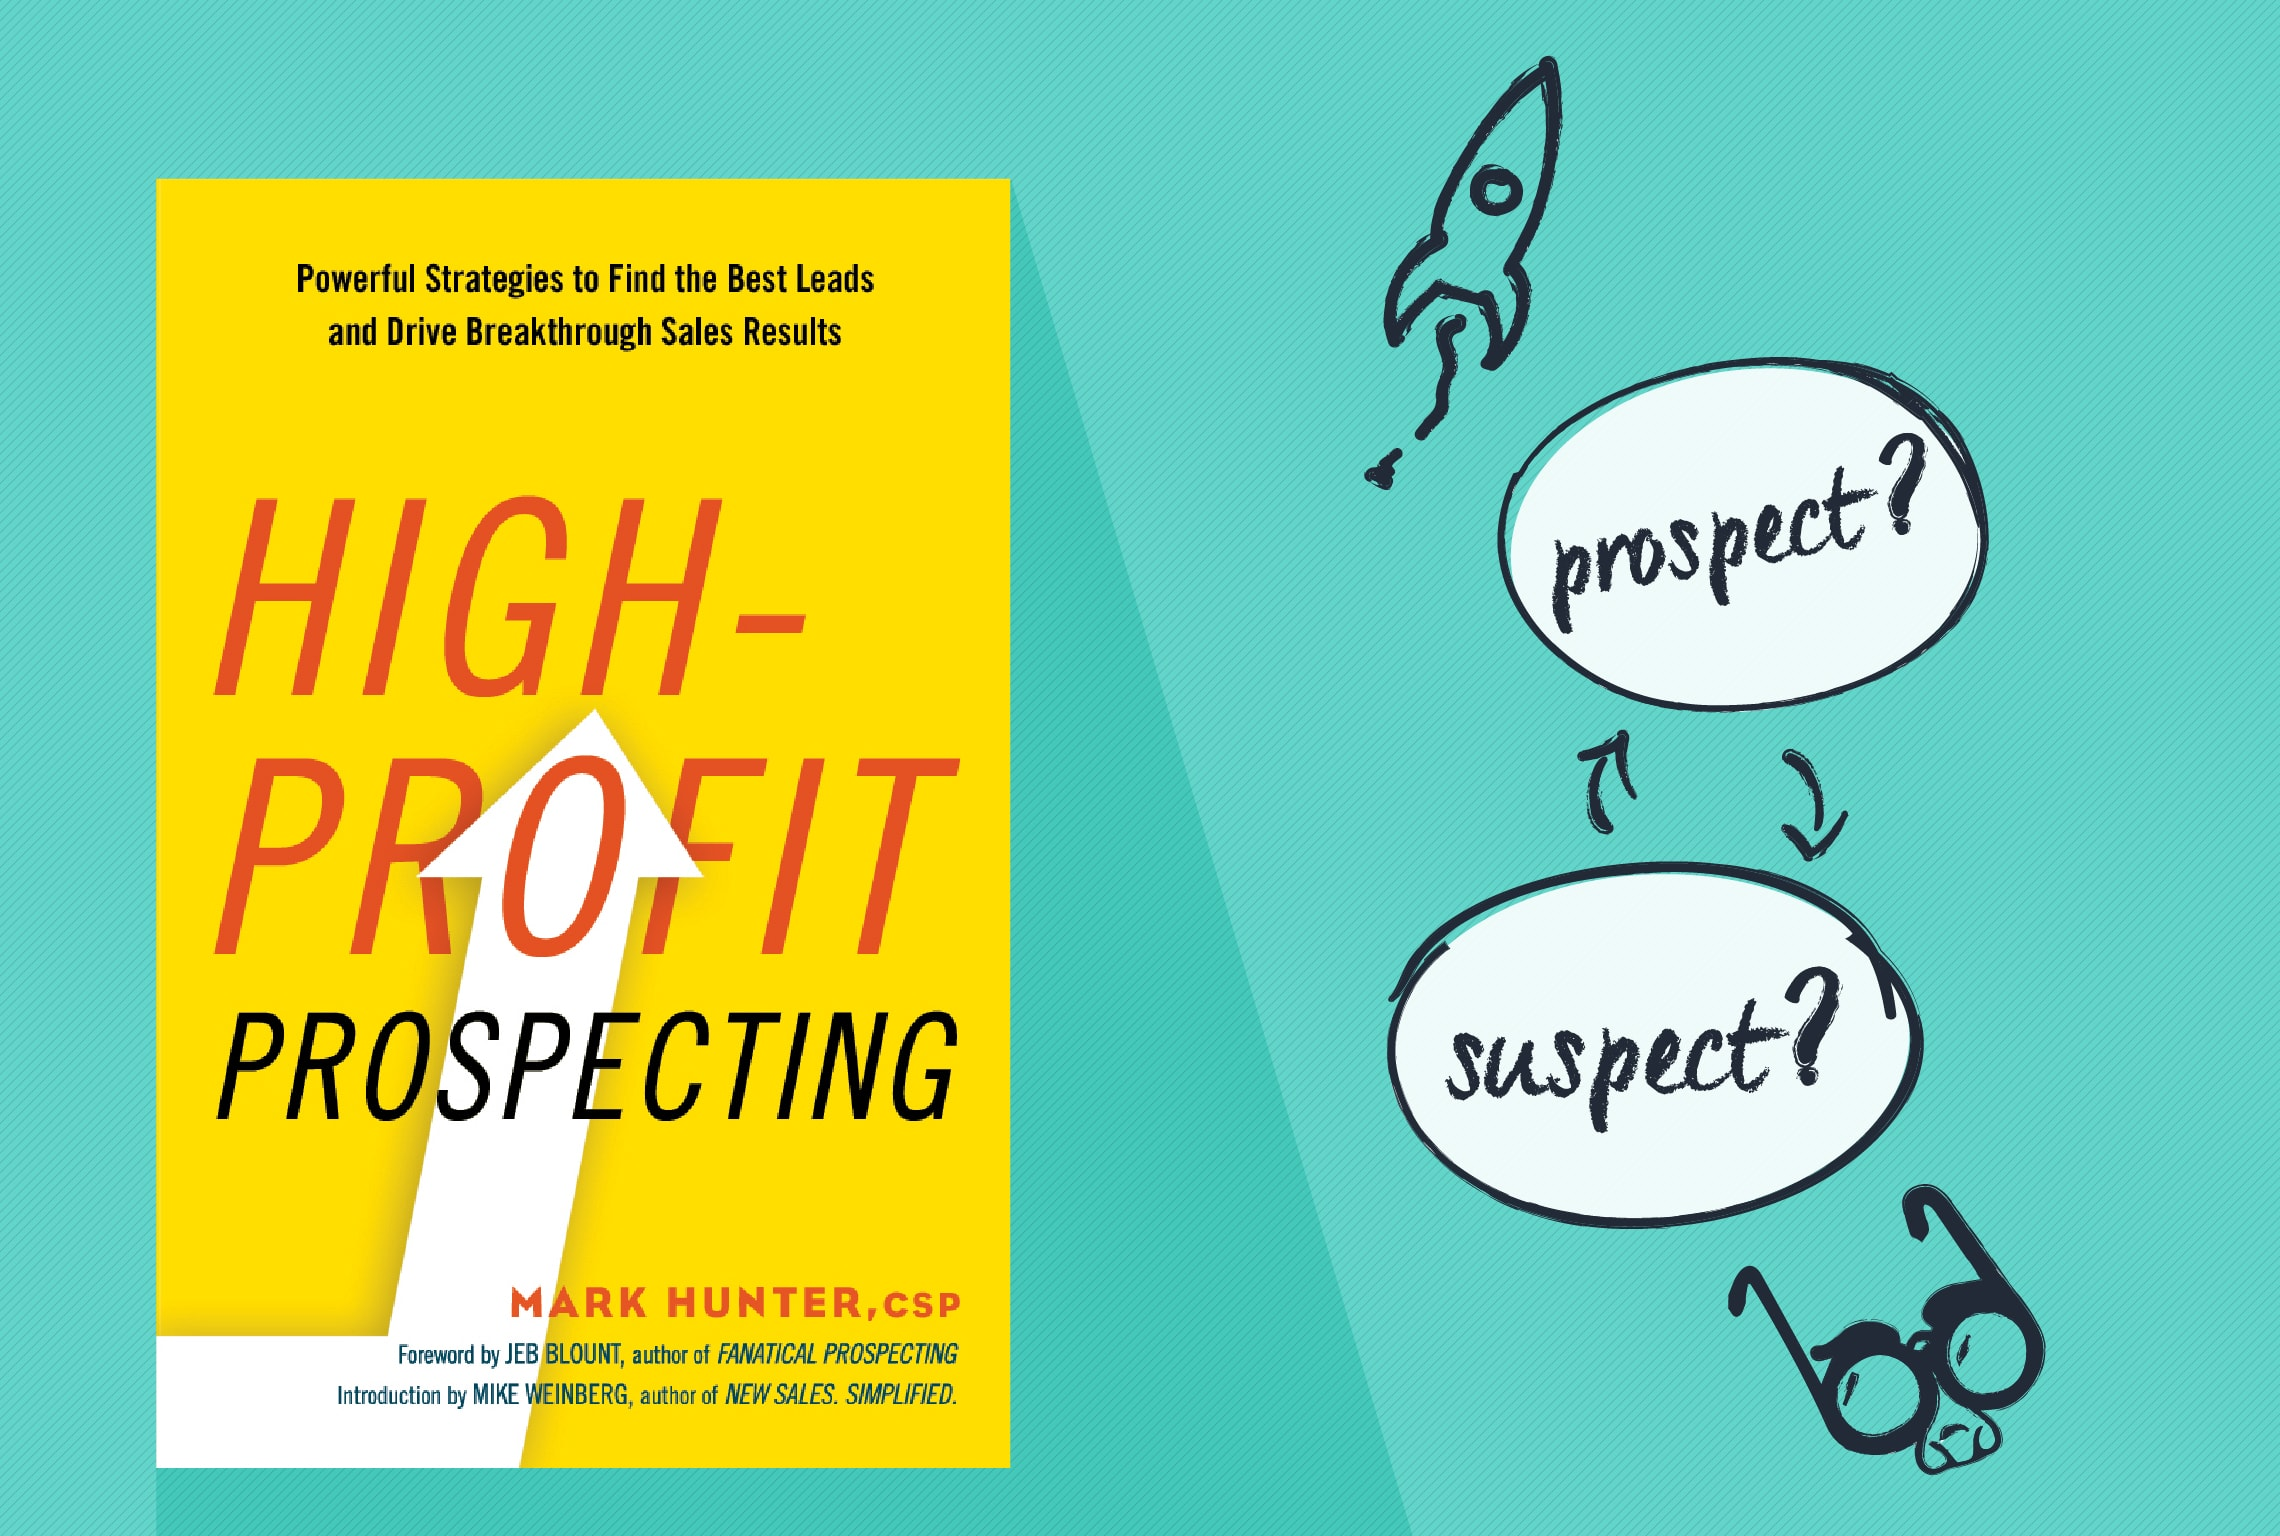 Prospects vs. suspects: 7 ways to tell if a sales prospect is wasting your time